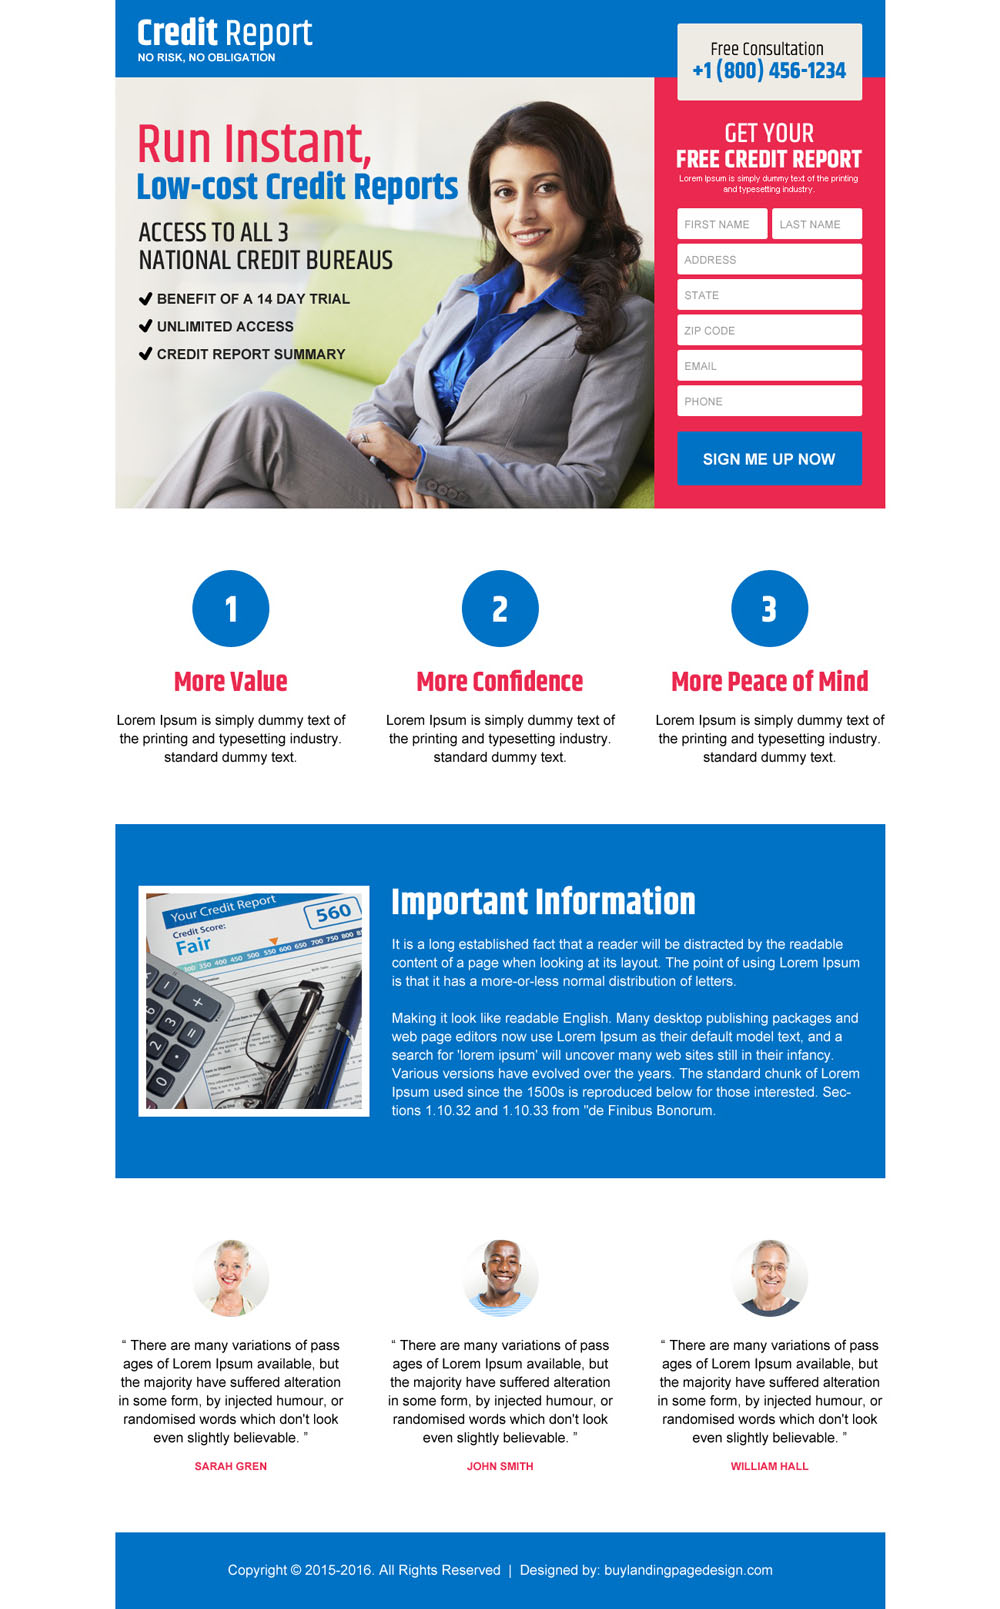 low-cost-credir-report-service-lead-generation-high-converting-landing-page-design-006